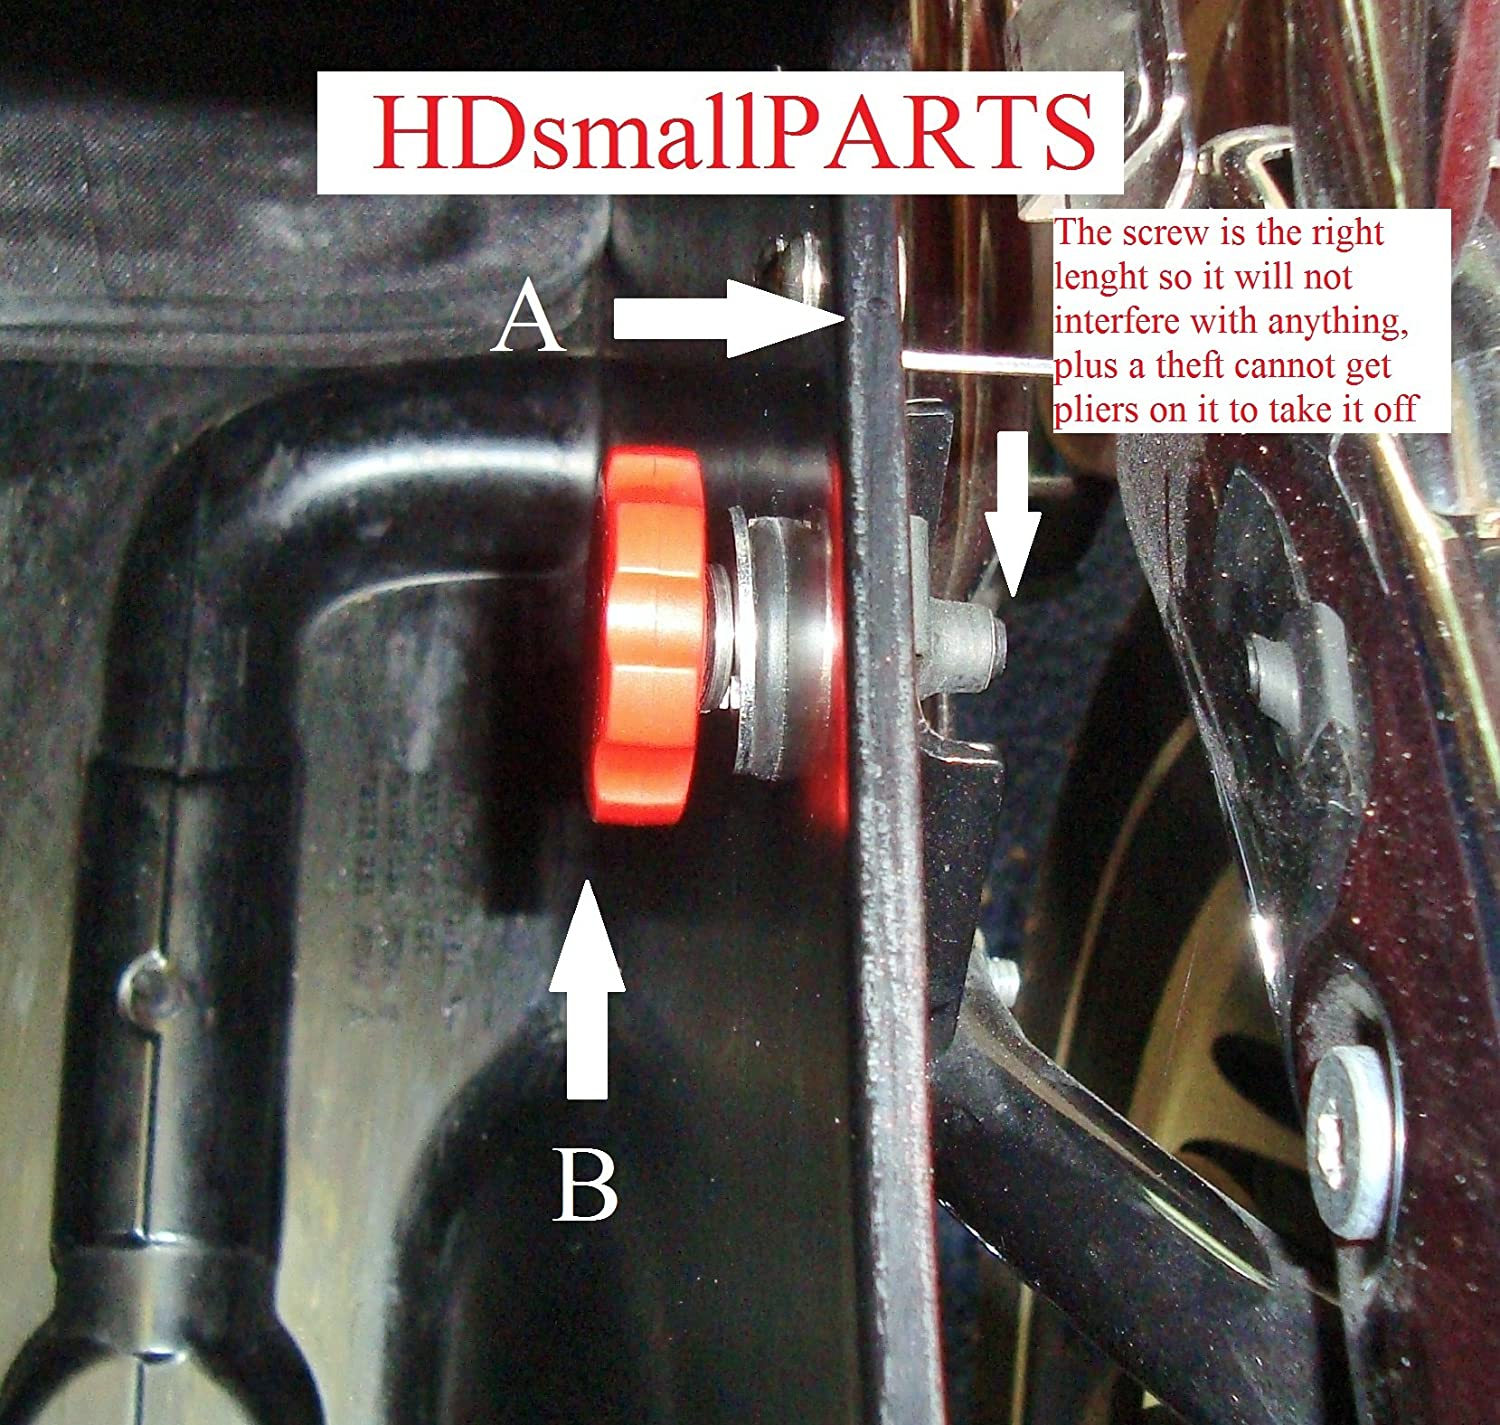 HDsmallPARTS//LocEzy Red 1996-2013 Saddlebag Mounting Hardware//Knobs are replacement//compatible for Saddlebag Quick Release Pins on Harley-Davidson Touring Motorcycles